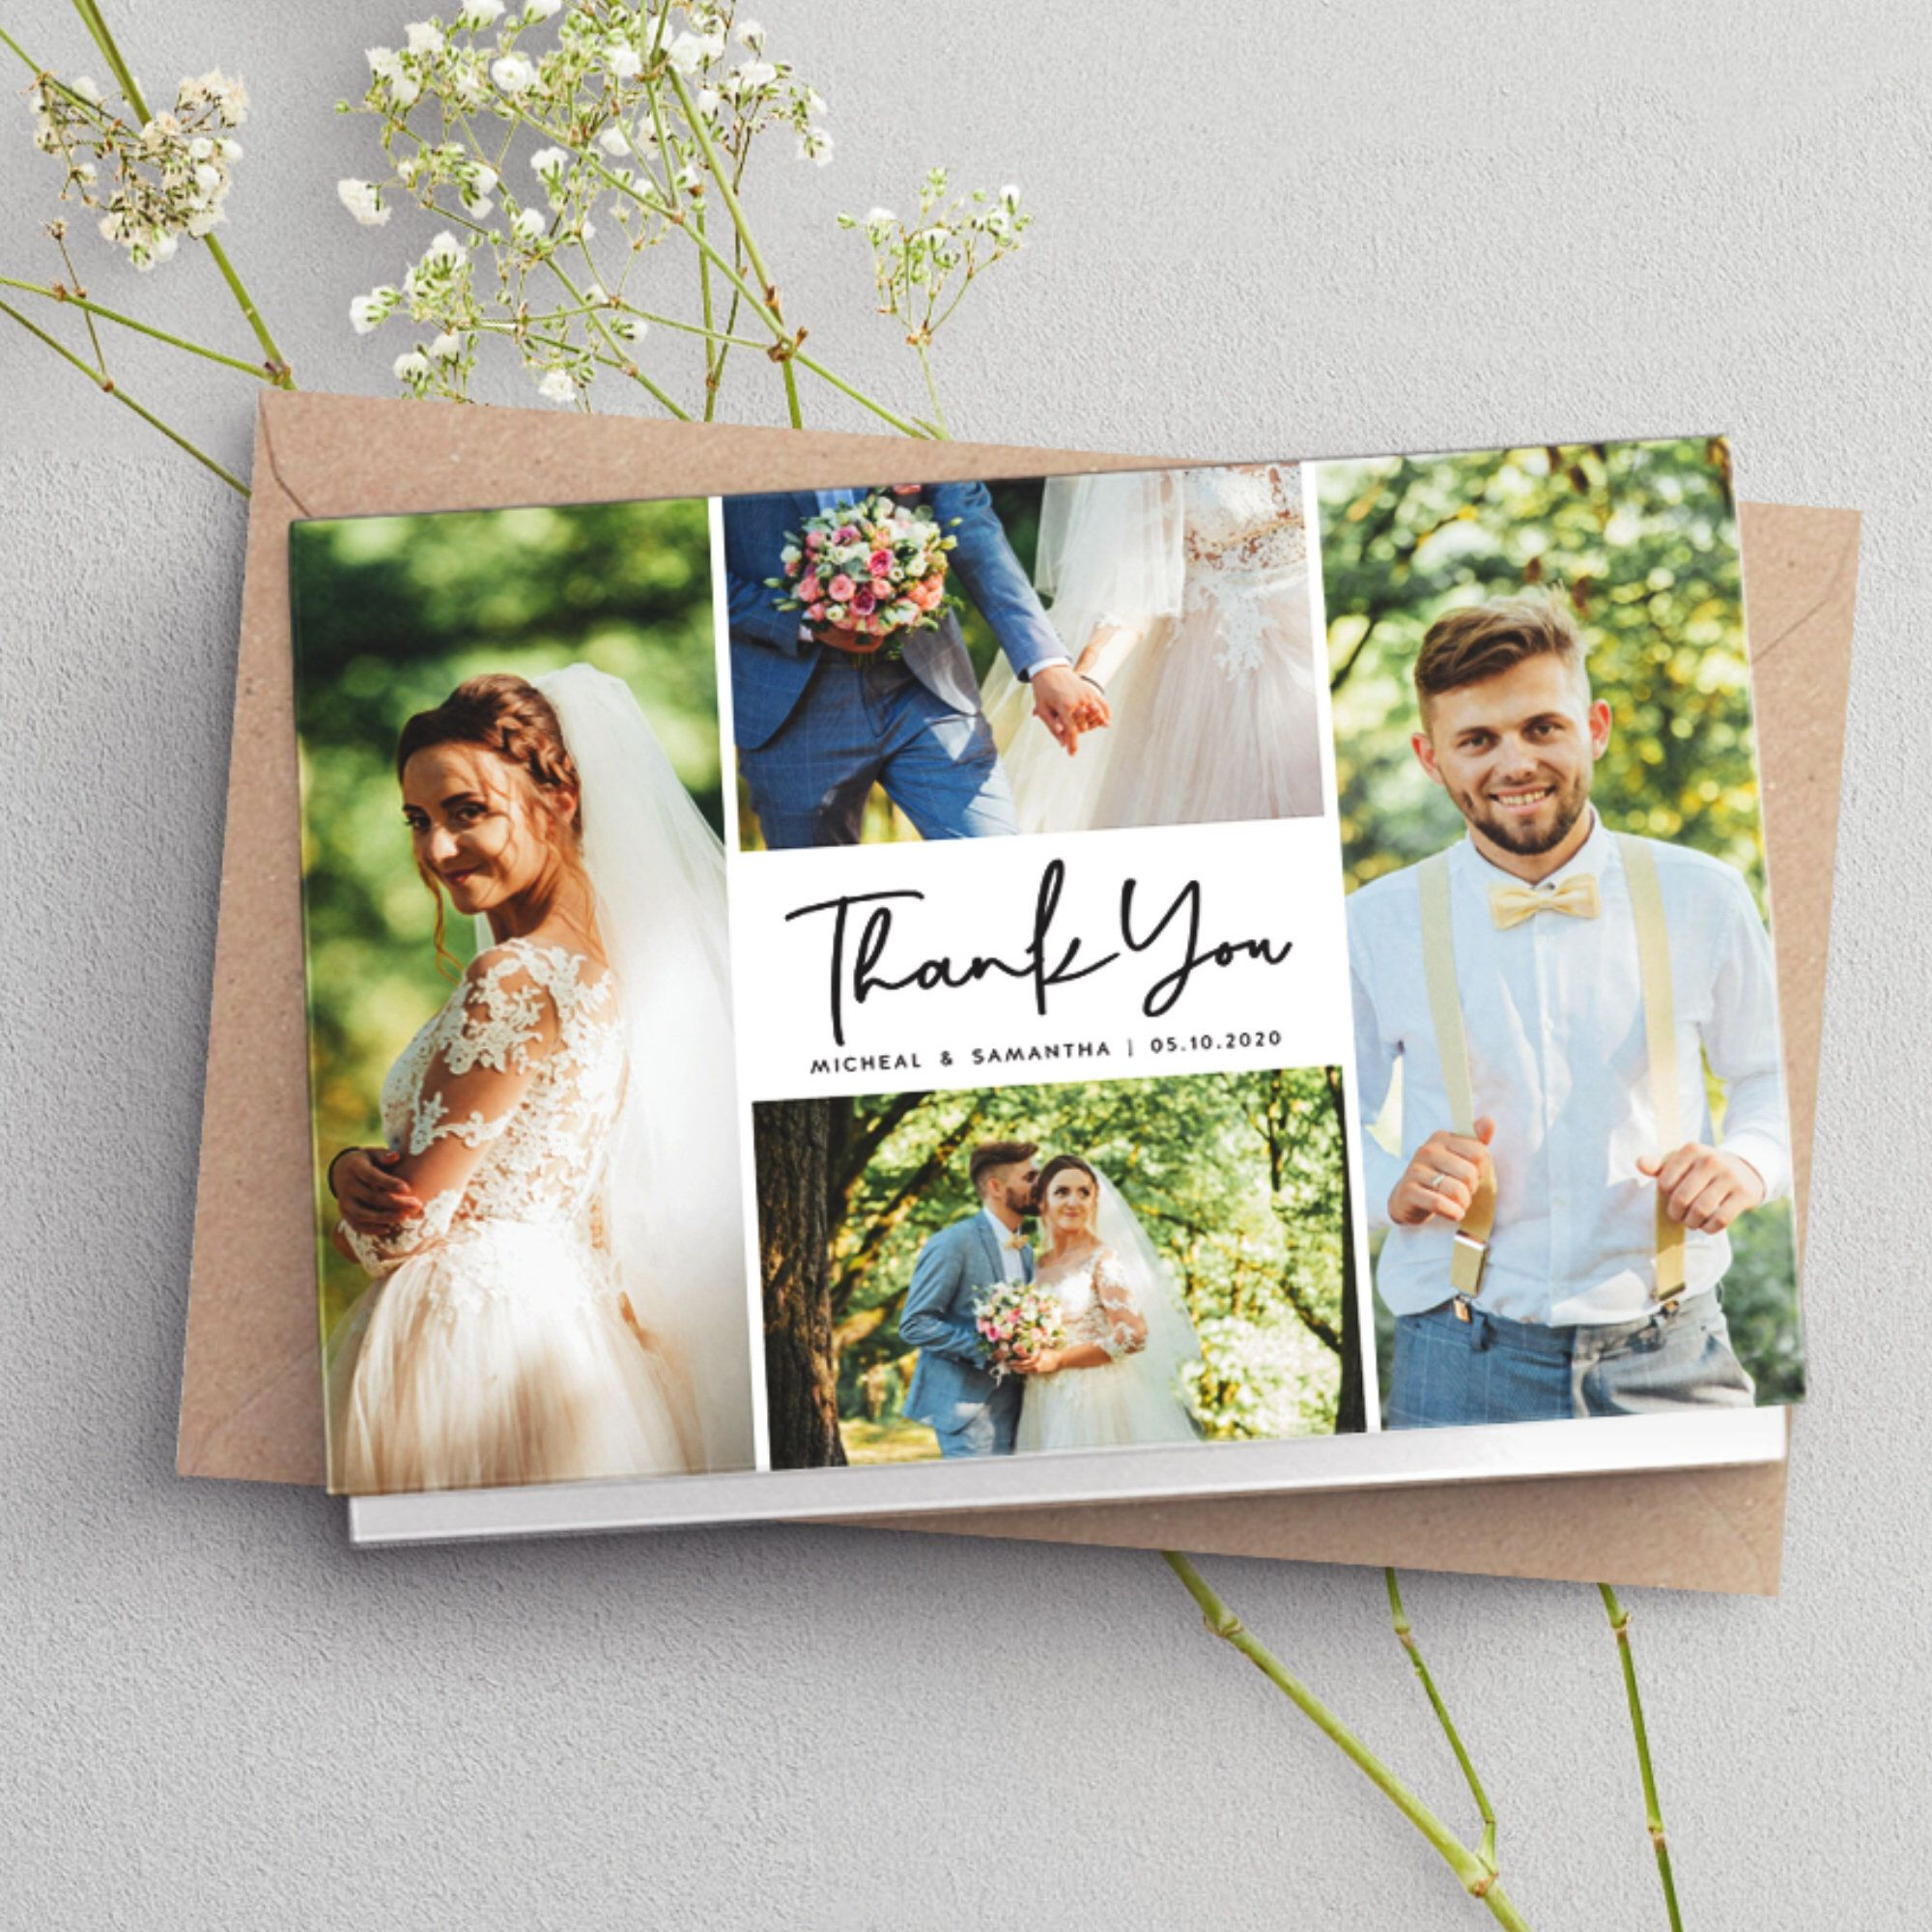 Folded Thank You Cards Wedding Thank You Card With Photo Etsy In 2020 Personalized Thank You Cards Thank You Photos Wedding Cards